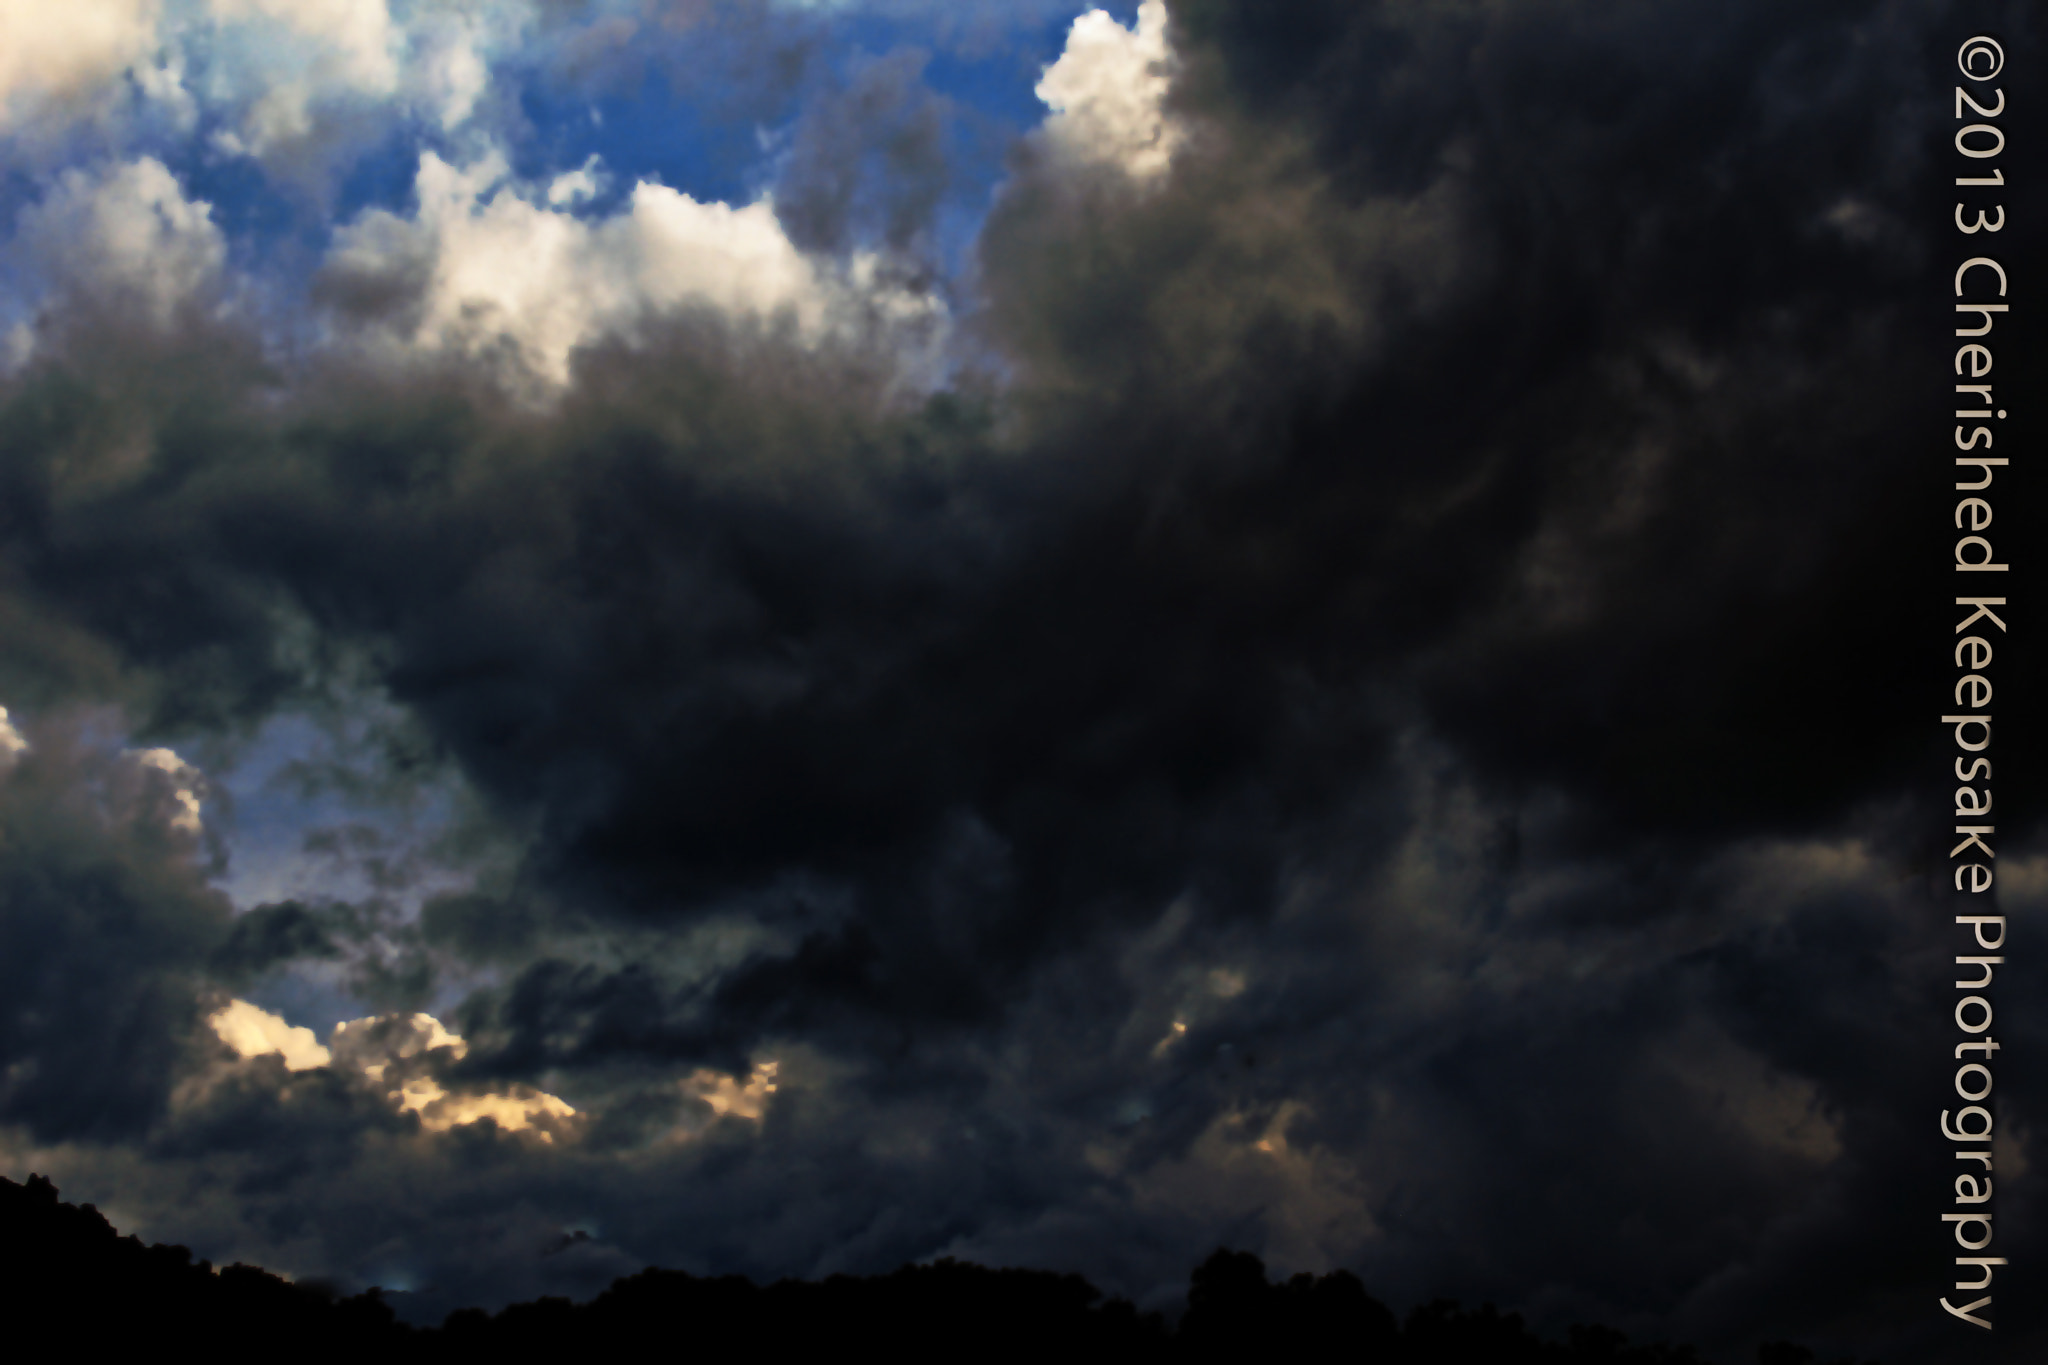 Photograph Storm rolling in by Dawn Vance on 500px